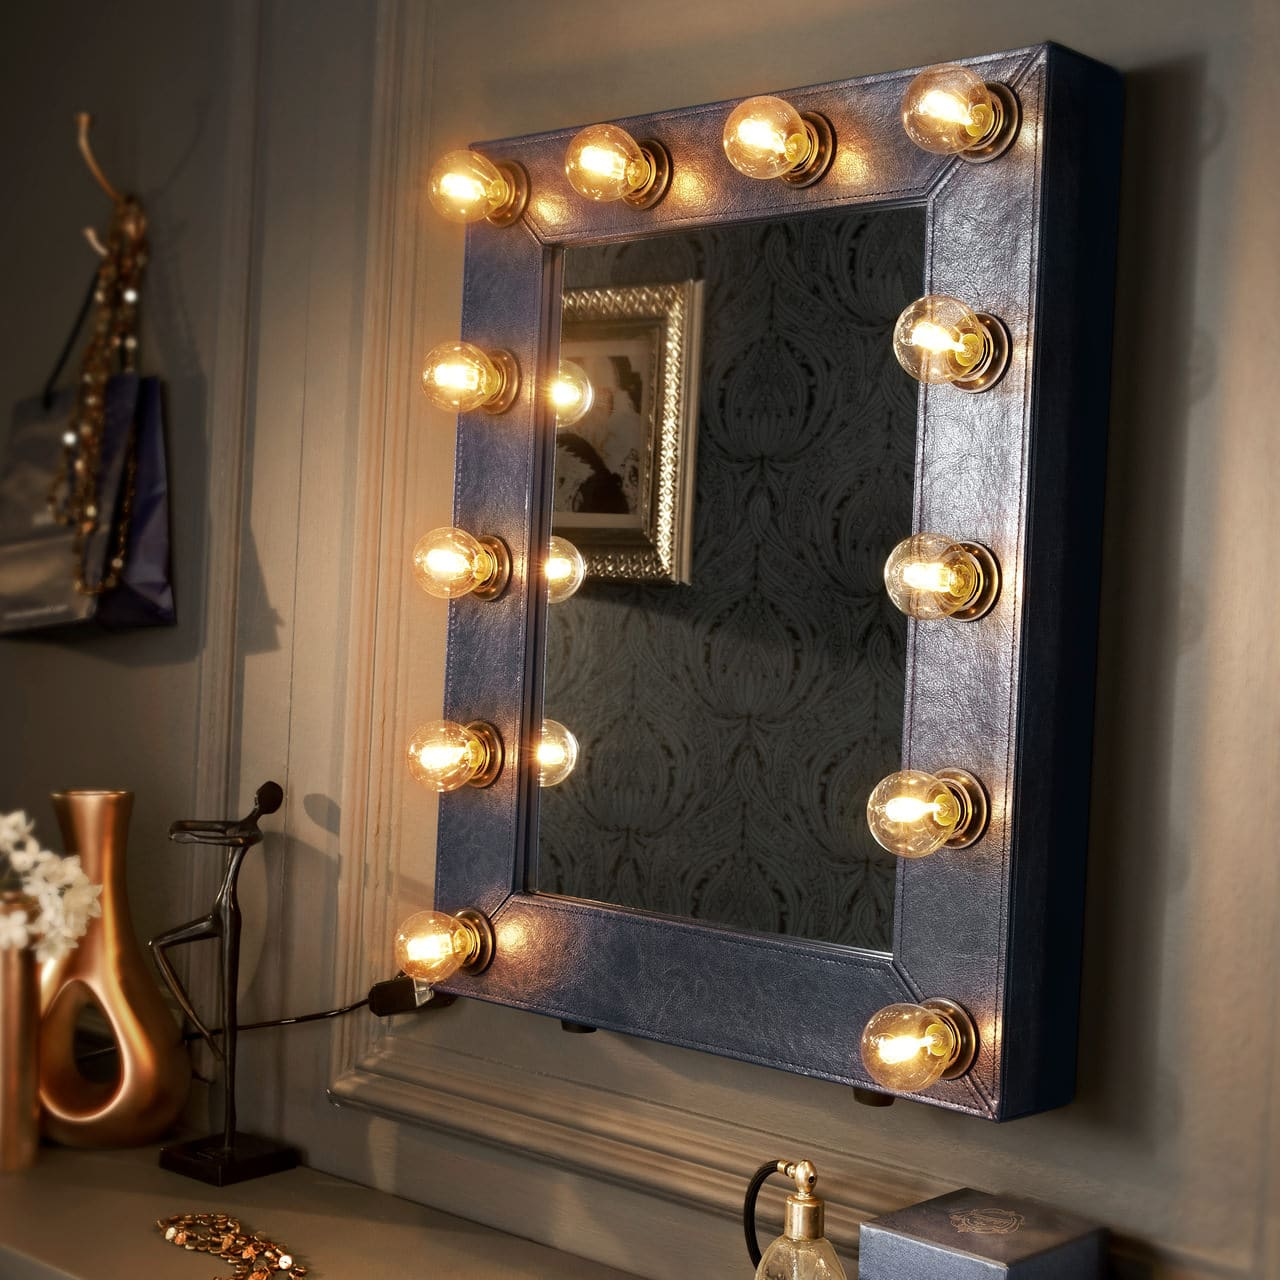 broadway hollywood mirror faux leather navy blue reflections of me. Black Bedroom Furniture Sets. Home Design Ideas